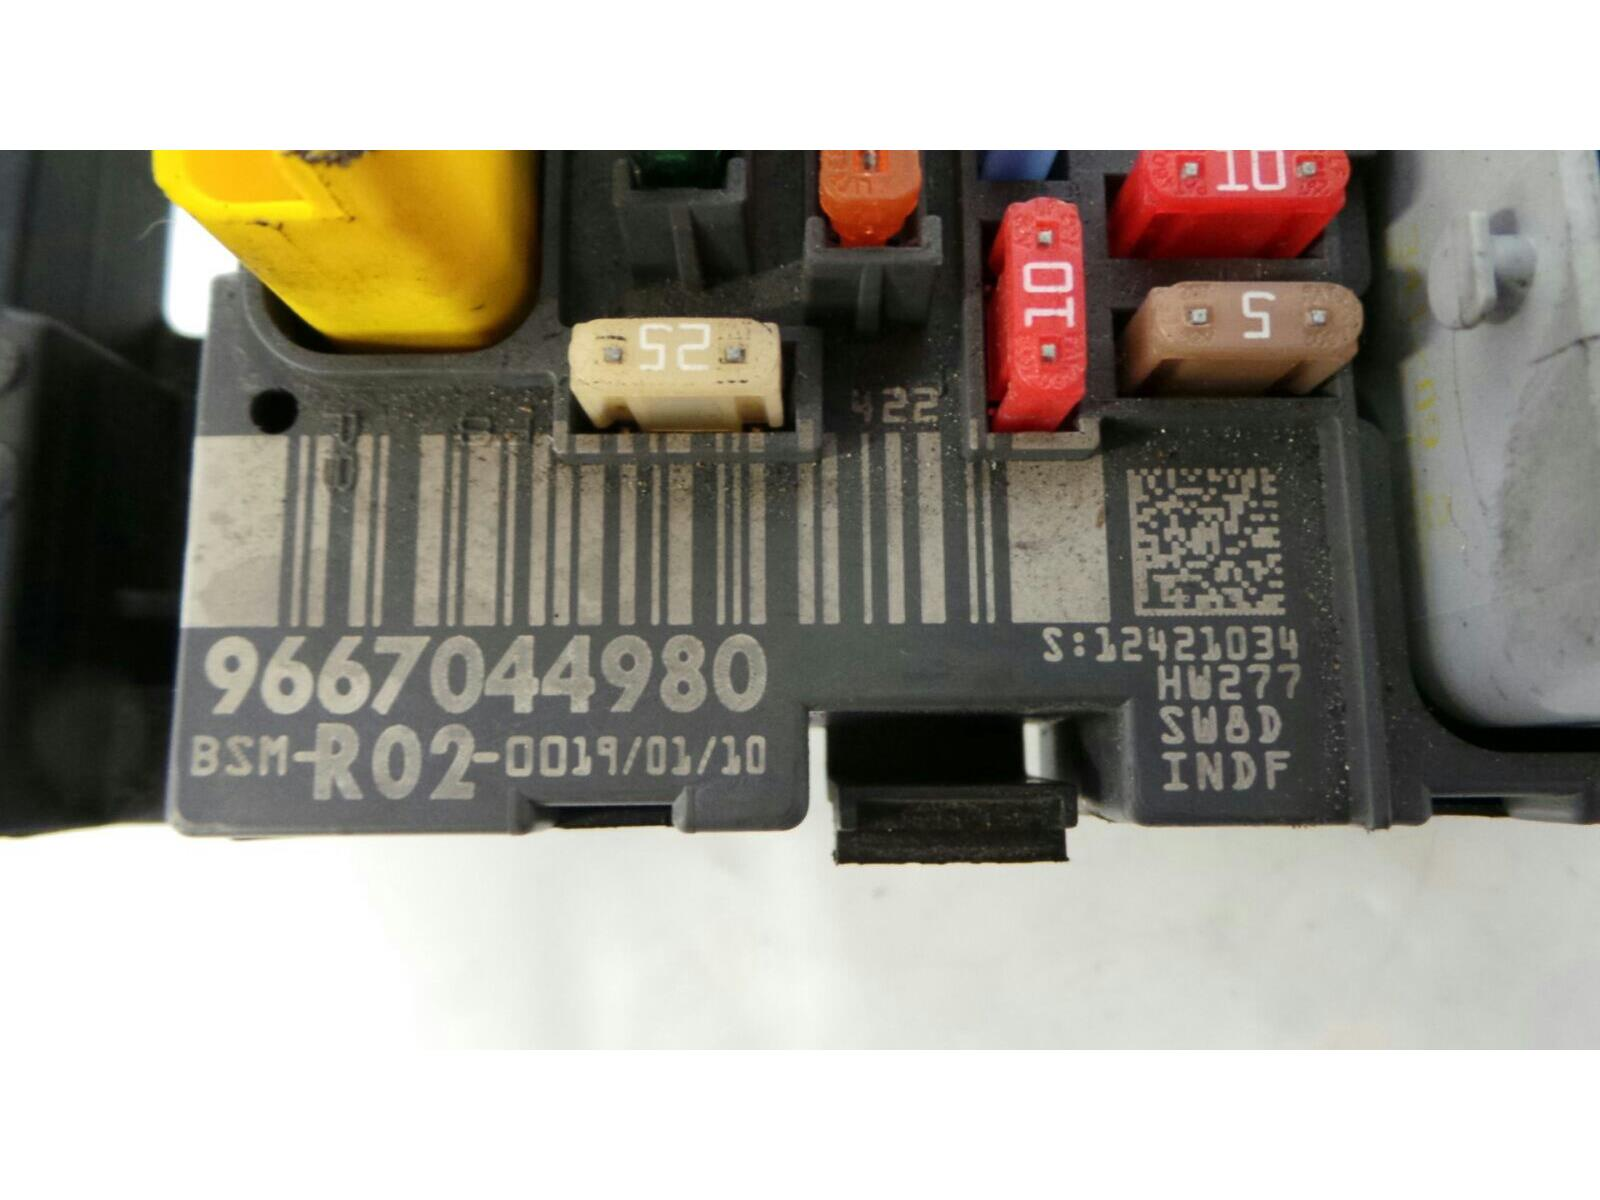 Peugeot 407 2004 To 2008 Fuse Box Diesel Manual For Sale From Board Warranty 7317668